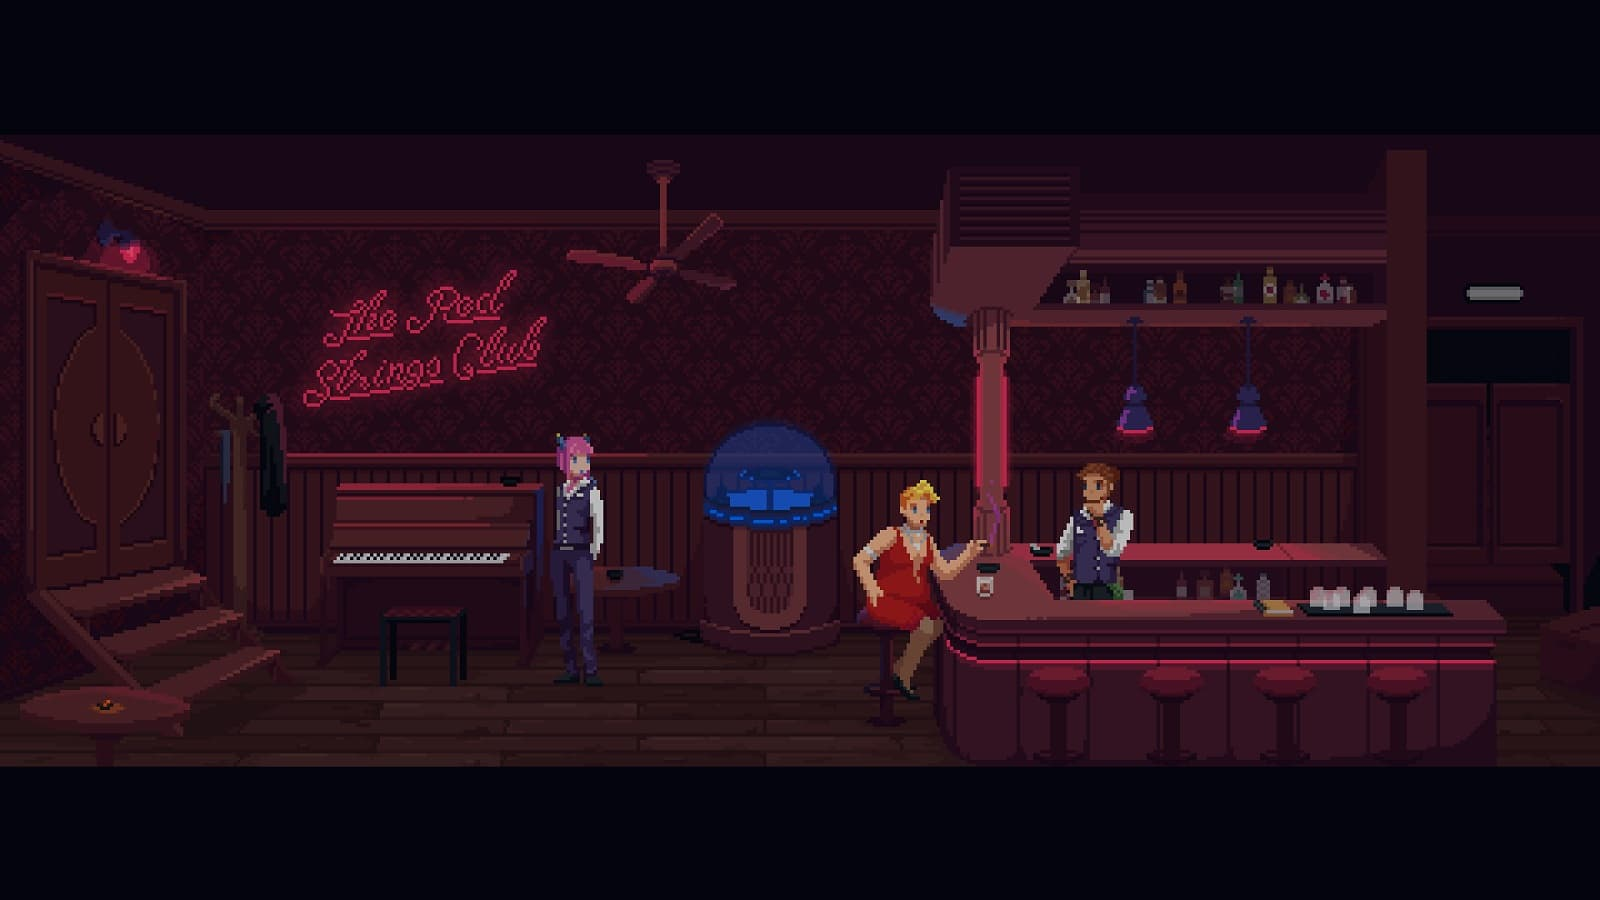 The Red Strings Club, Indie Game, SciFi, Cyberpunk, Review, инди-игра, киберпанк, фантастика, обзор, рецензия